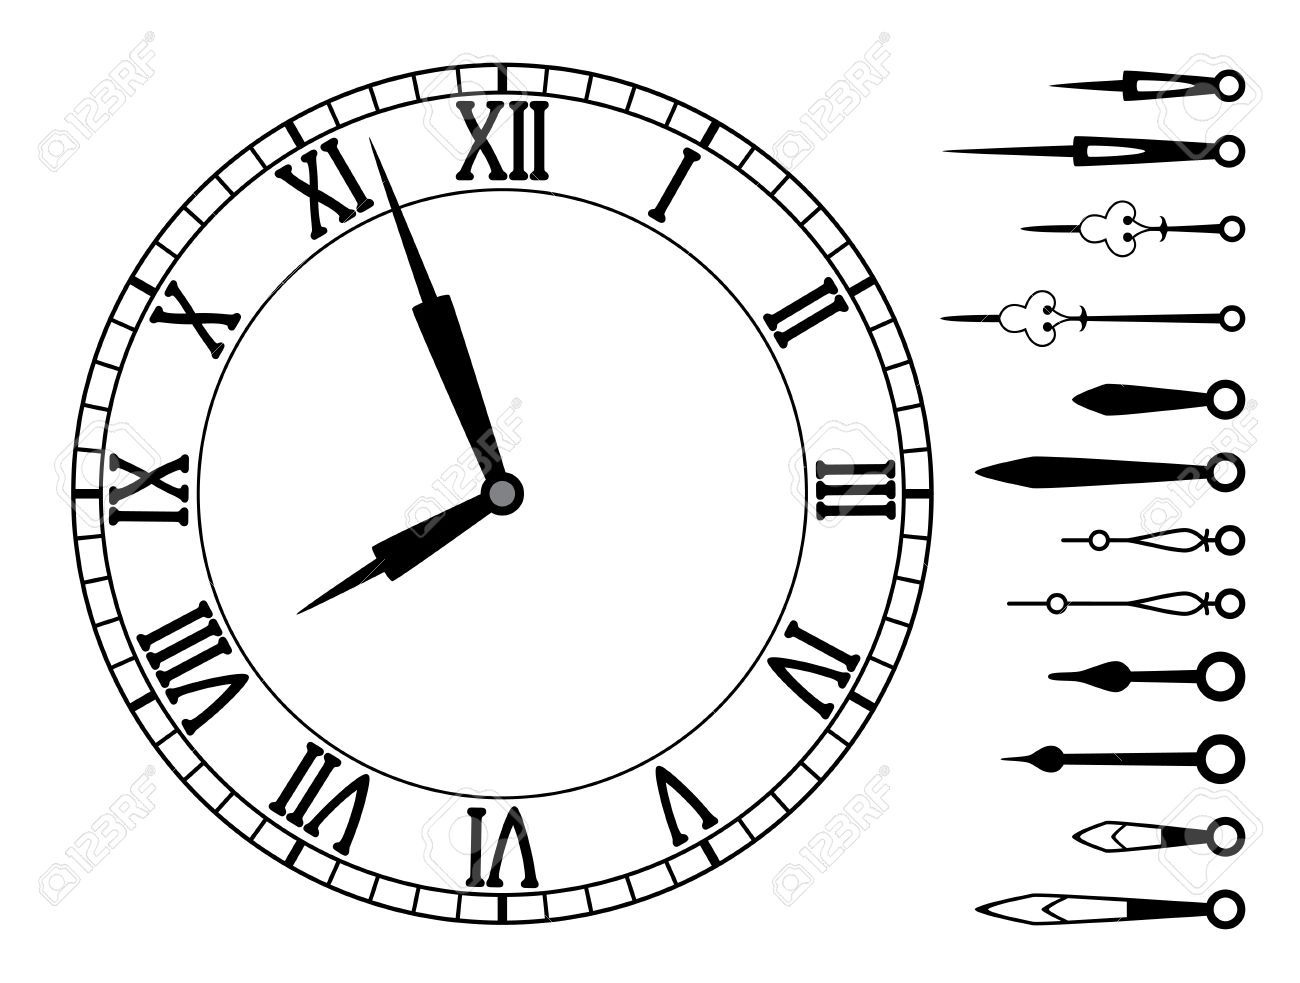 vector clock dial with roman numbers and set of clock hands royalty rh 123rf com free vector clock hands Vintage Clock Vector